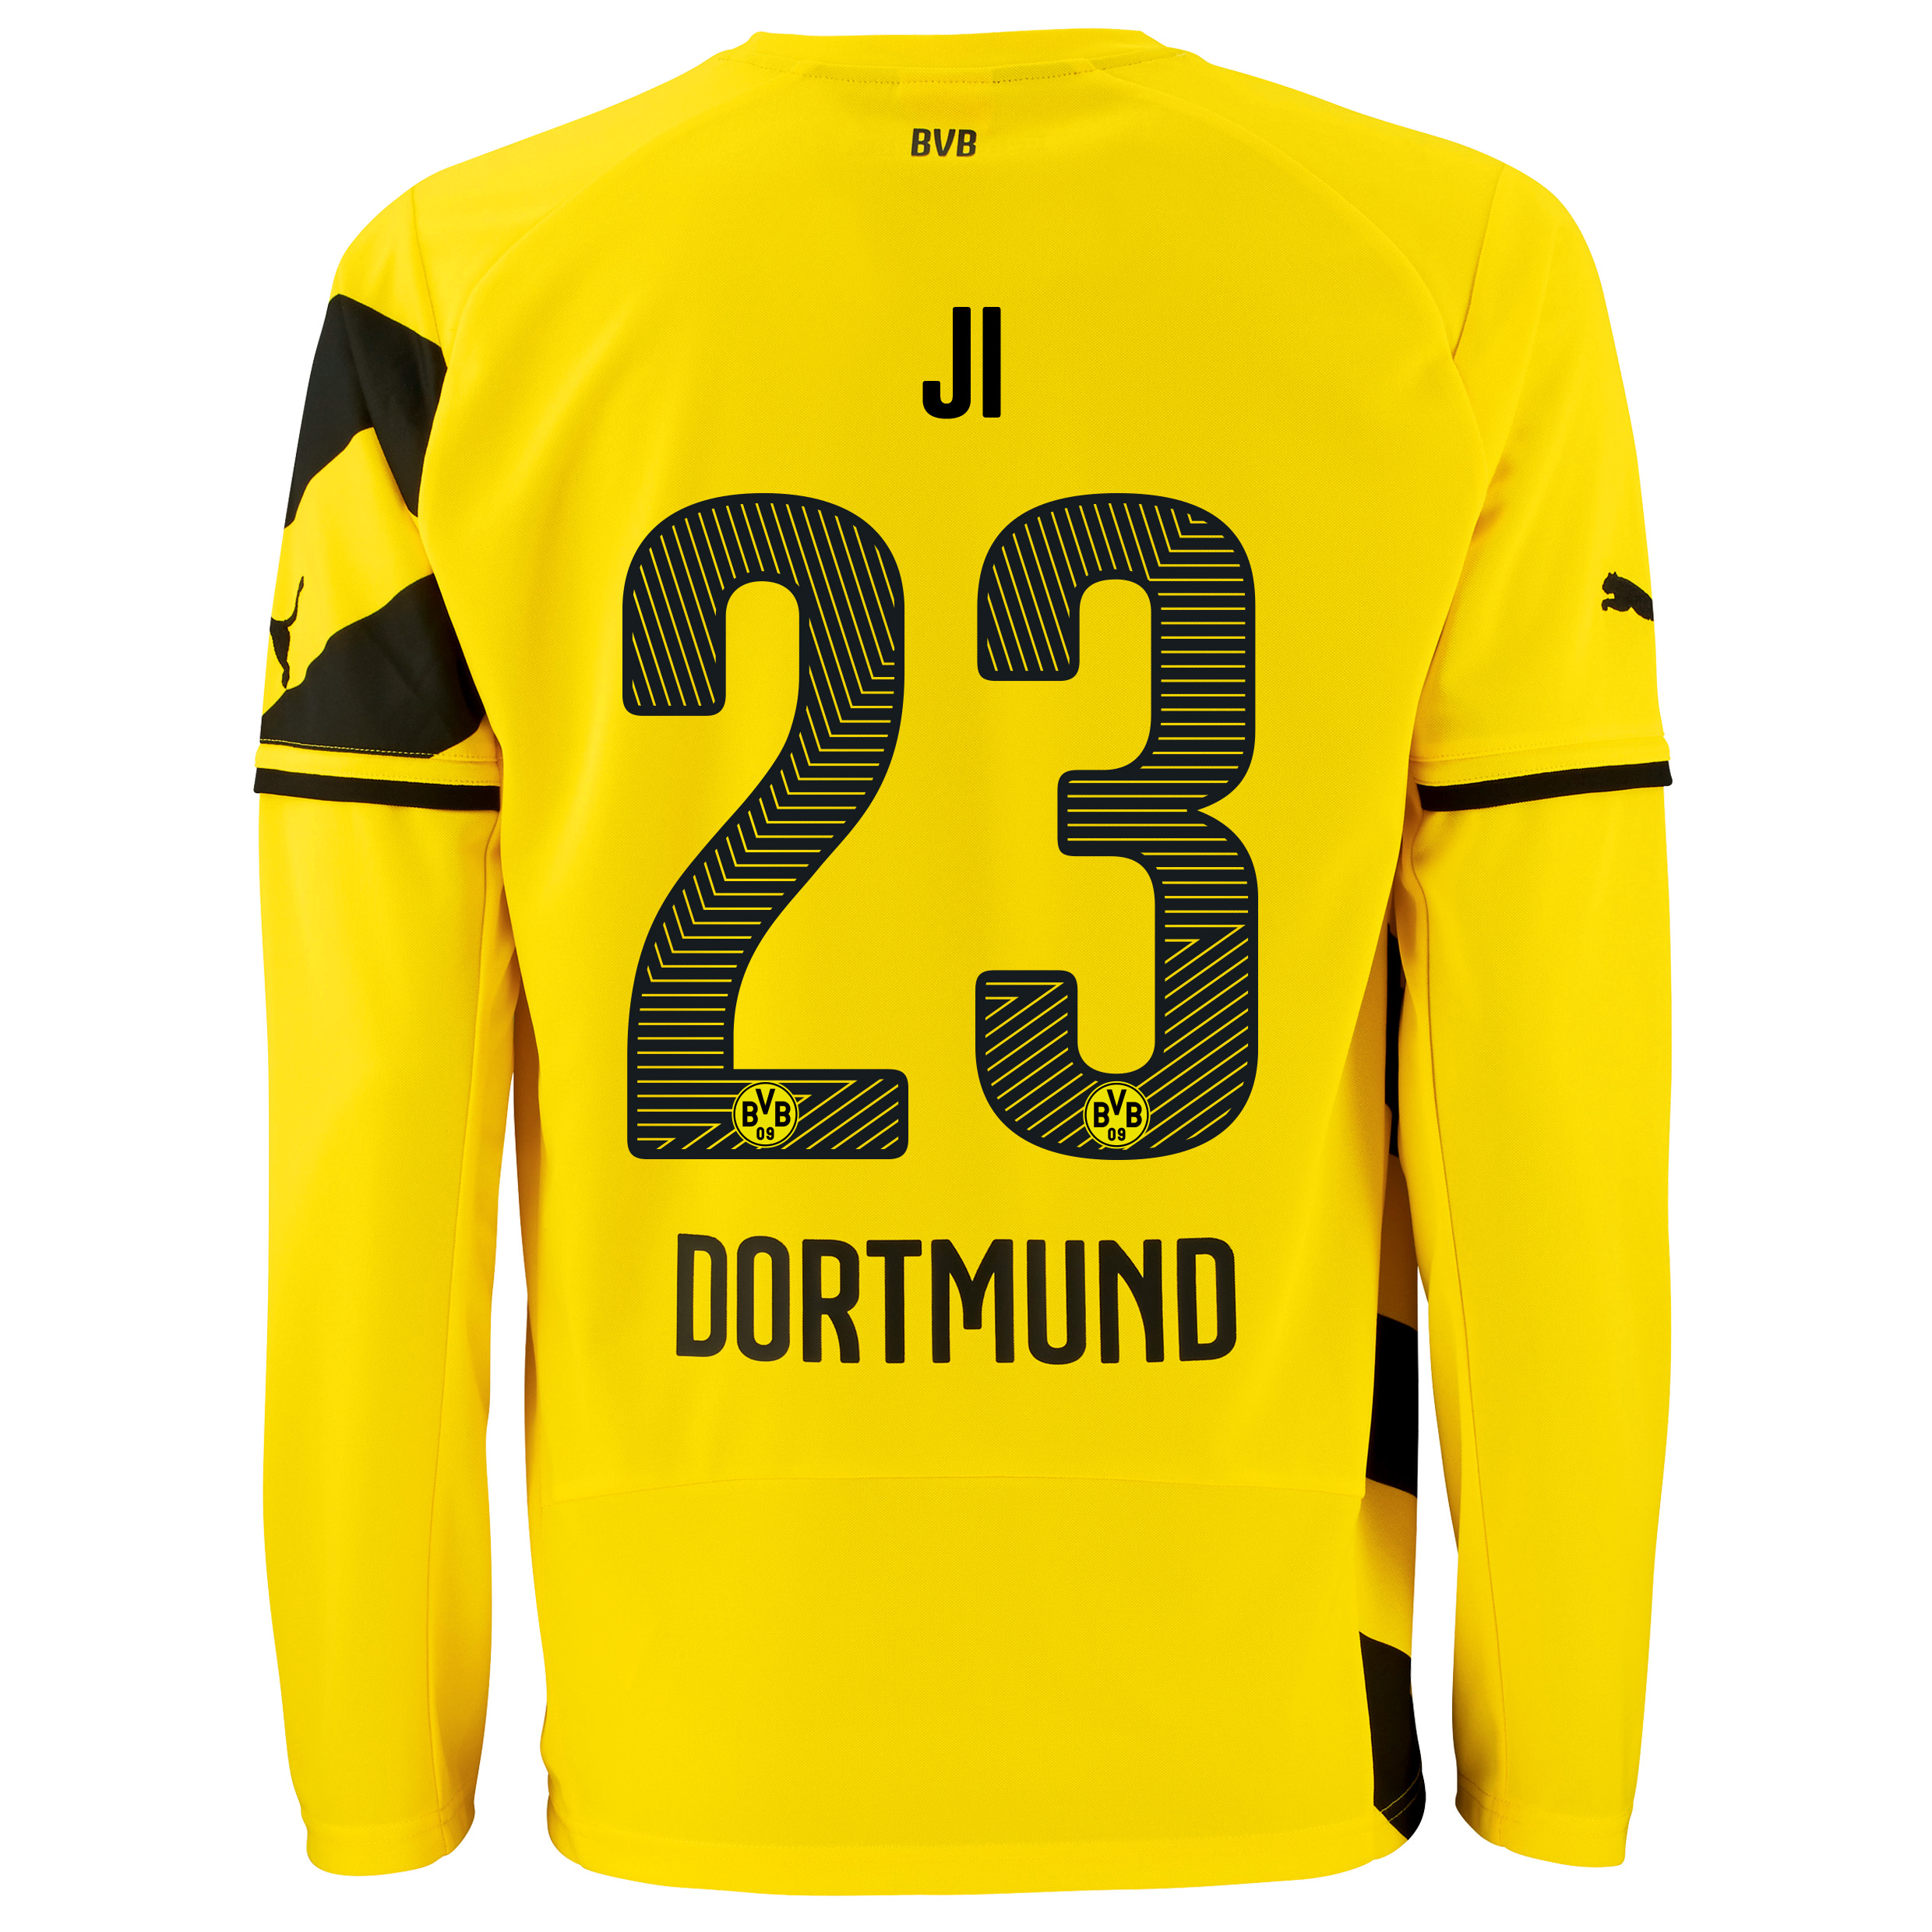 BVB Home Shirt 2014/15 - Long Sleeve - Kids Yellow with Dong-Won Ji 23 printing